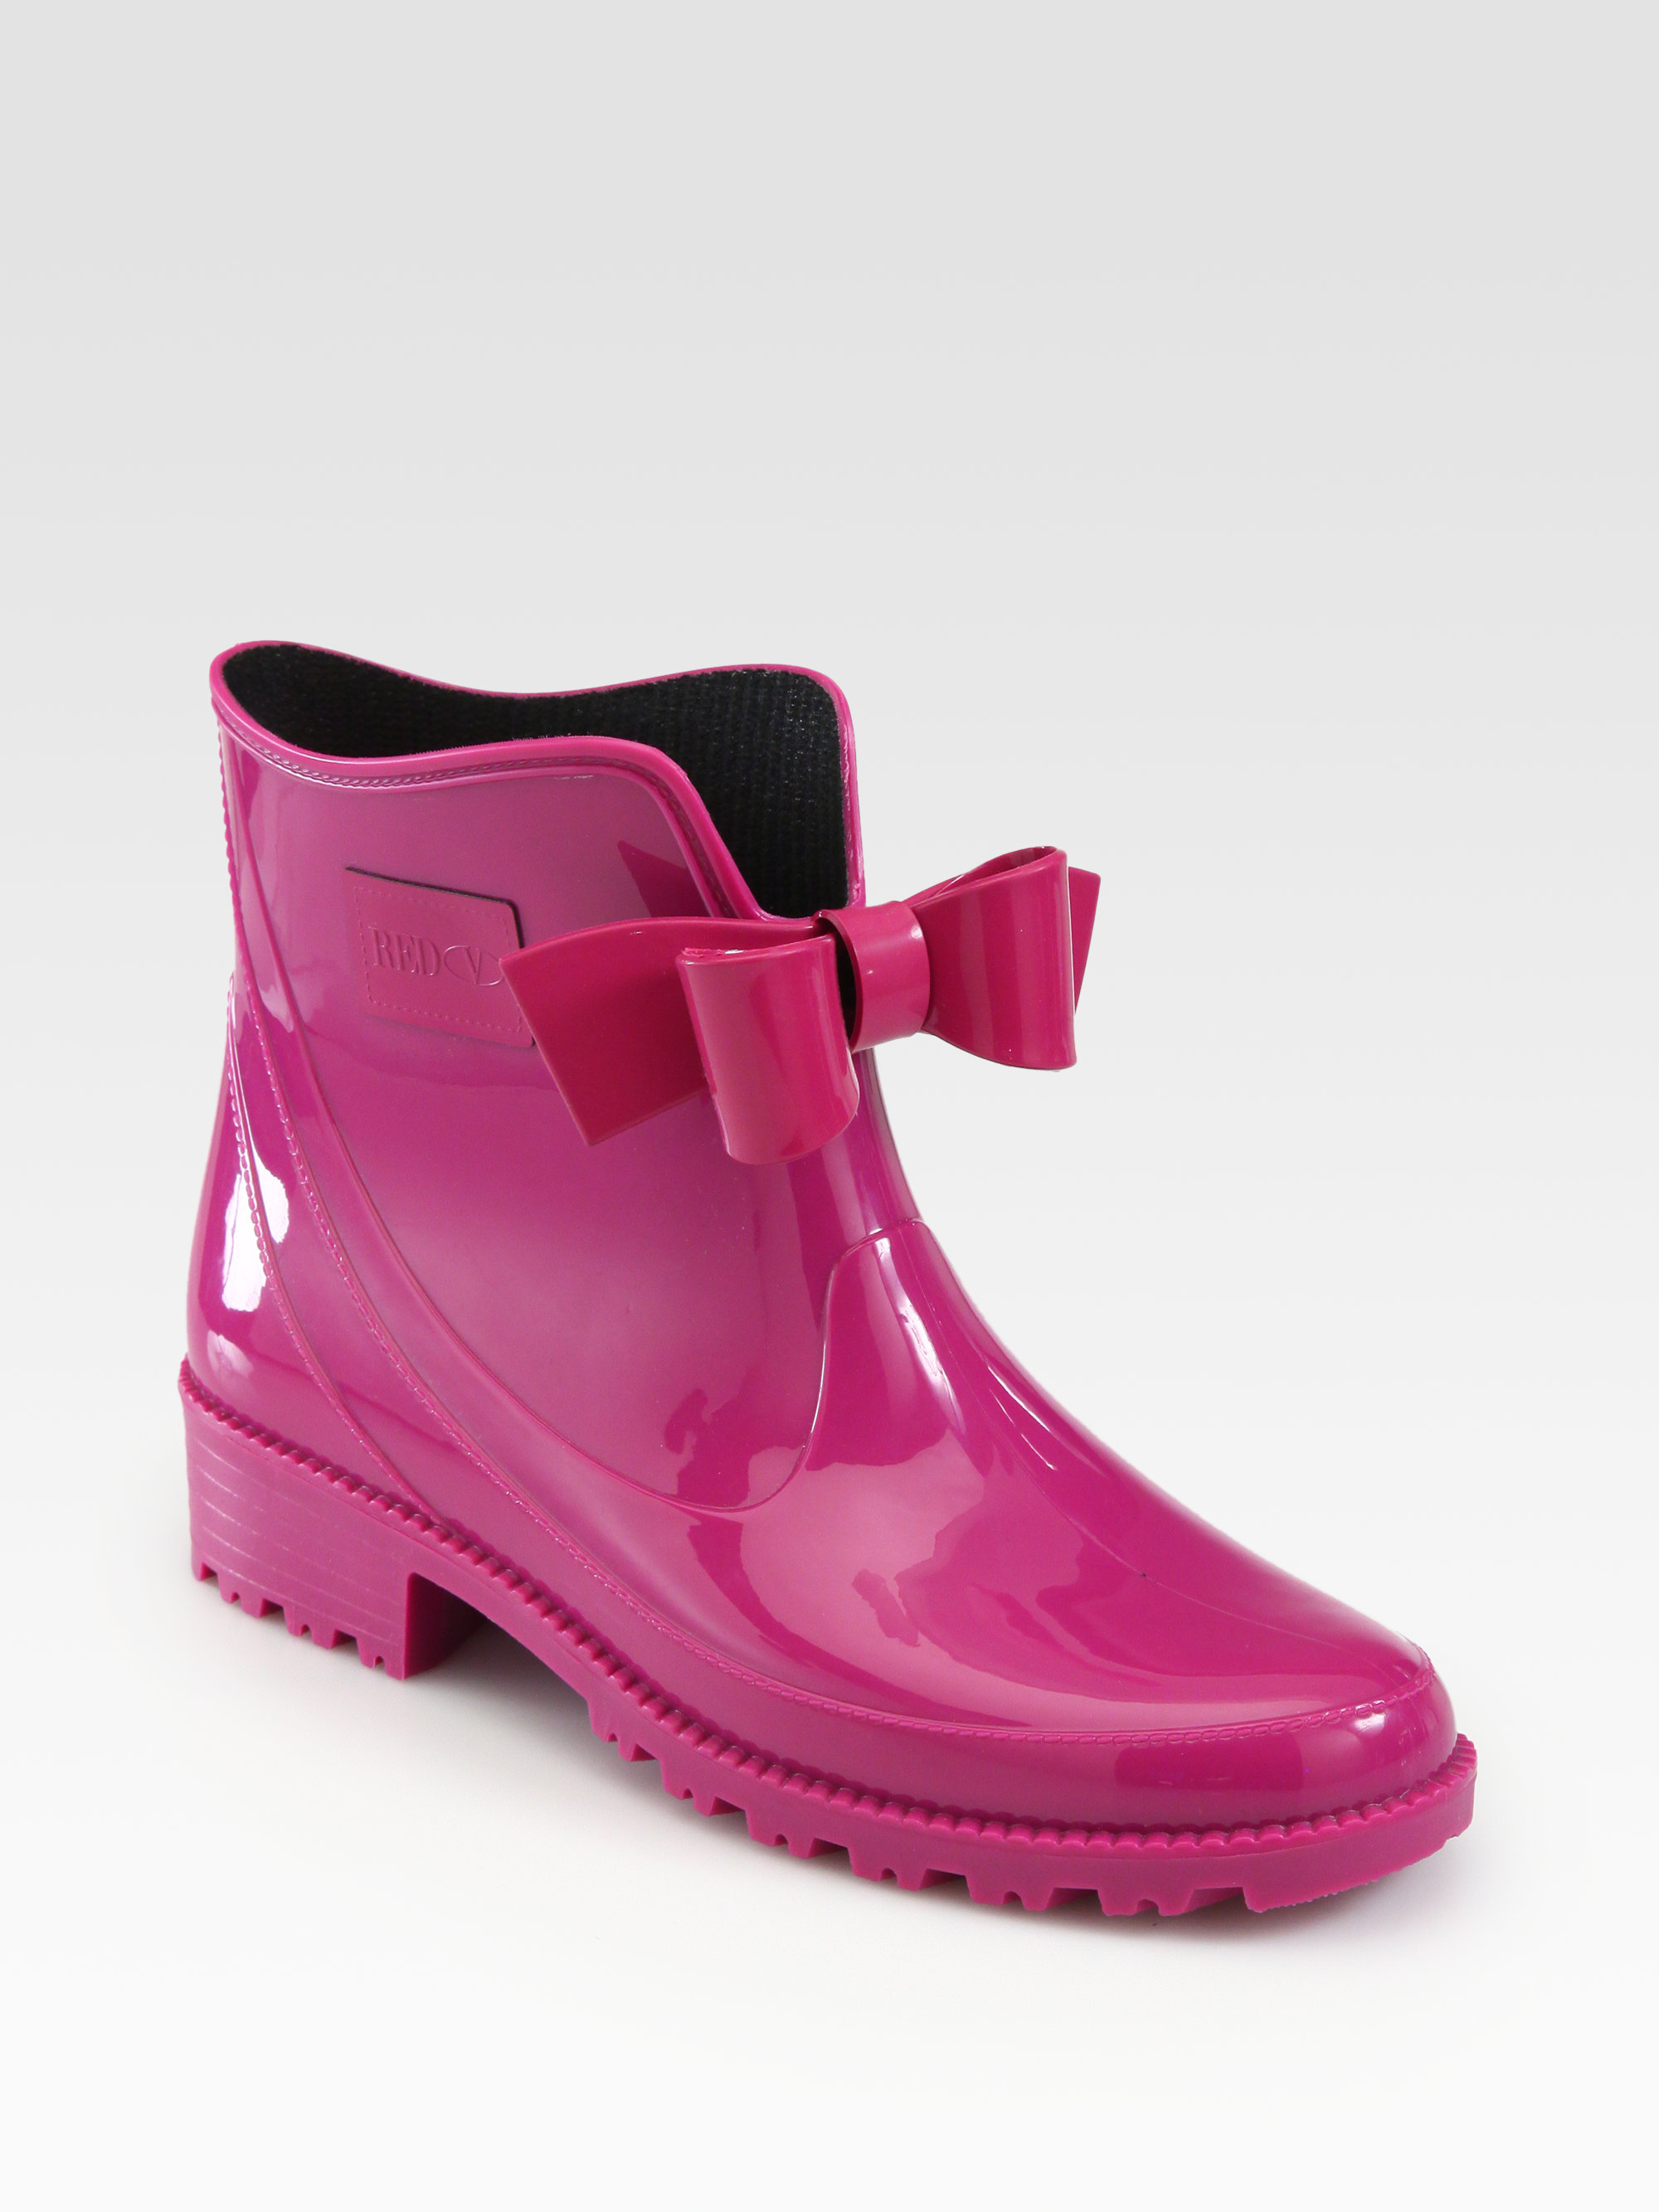 Red Valentino Bow Rain Boots In Pink Raspberry Lyst